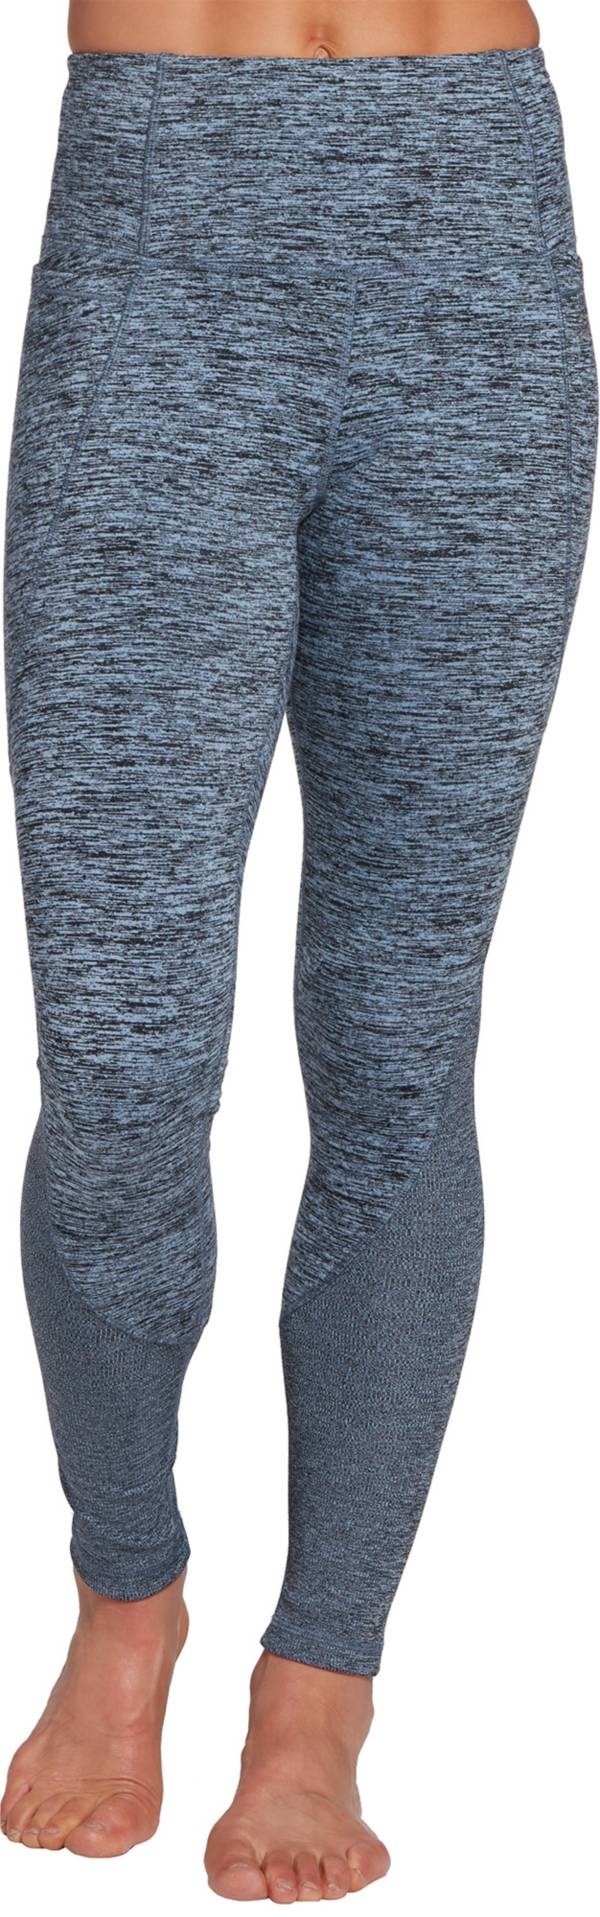 CALIA by Carrie Underwood Women's Essential Cozy Rib Tights (Regular and Plus) product image